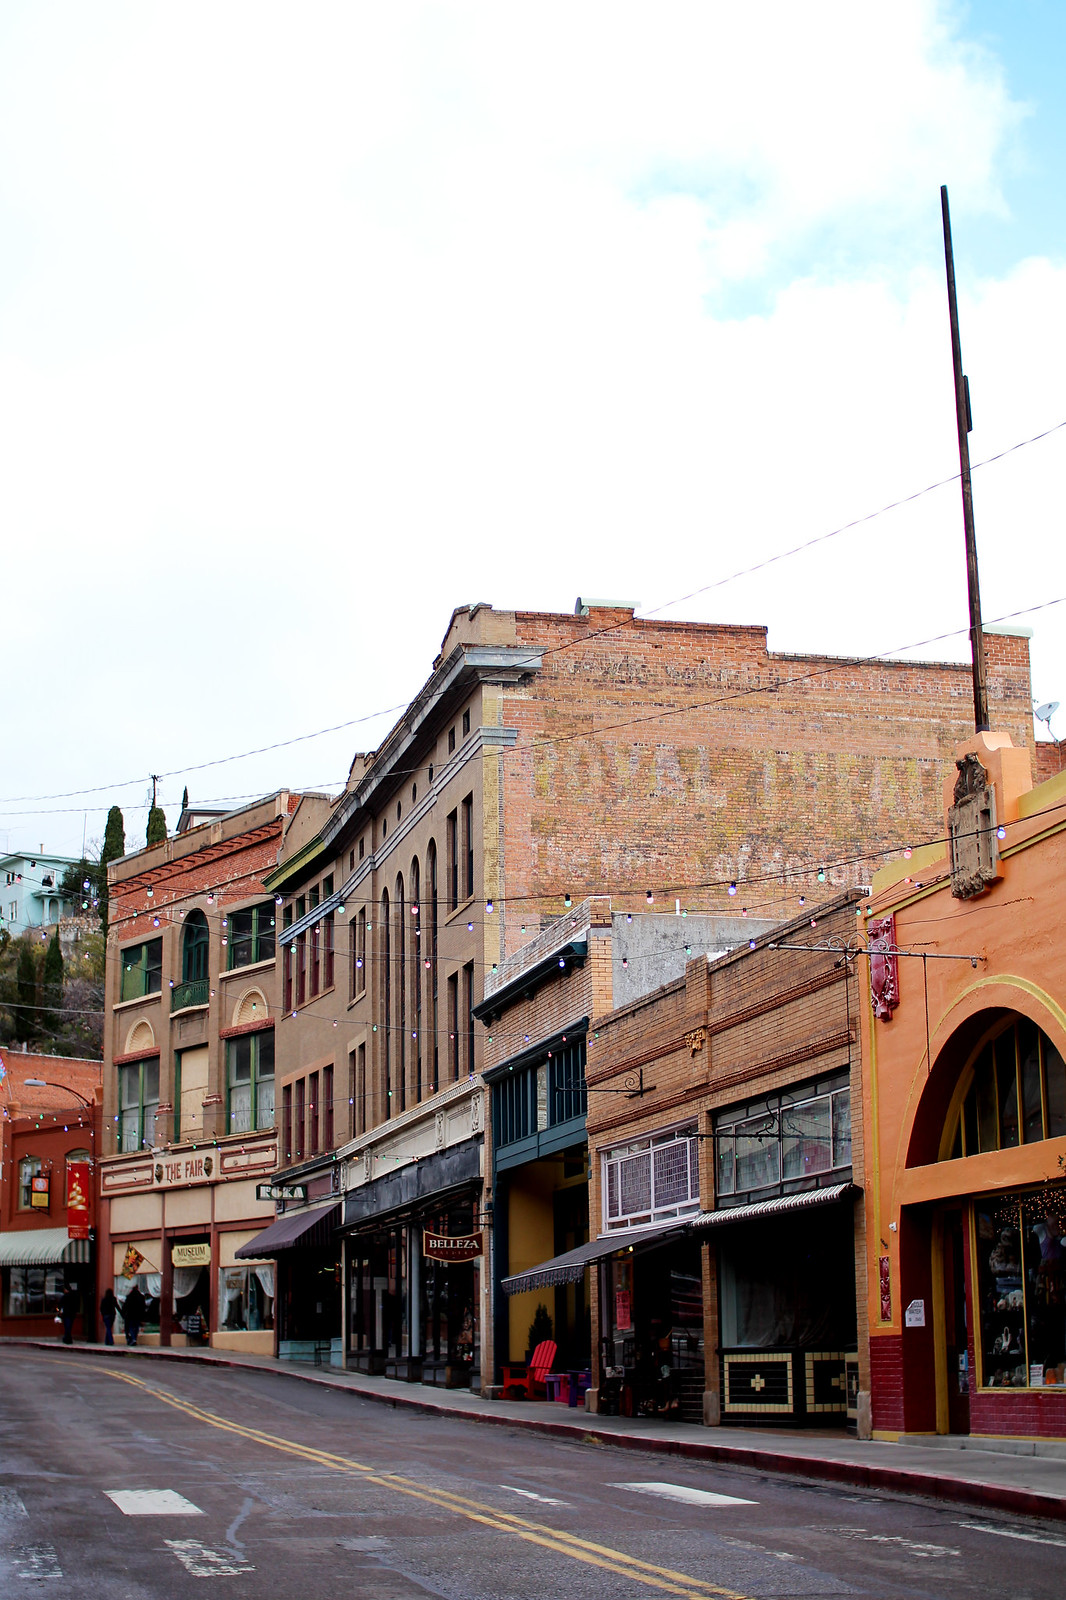 Bisbee, Arizona, USA travel blogger